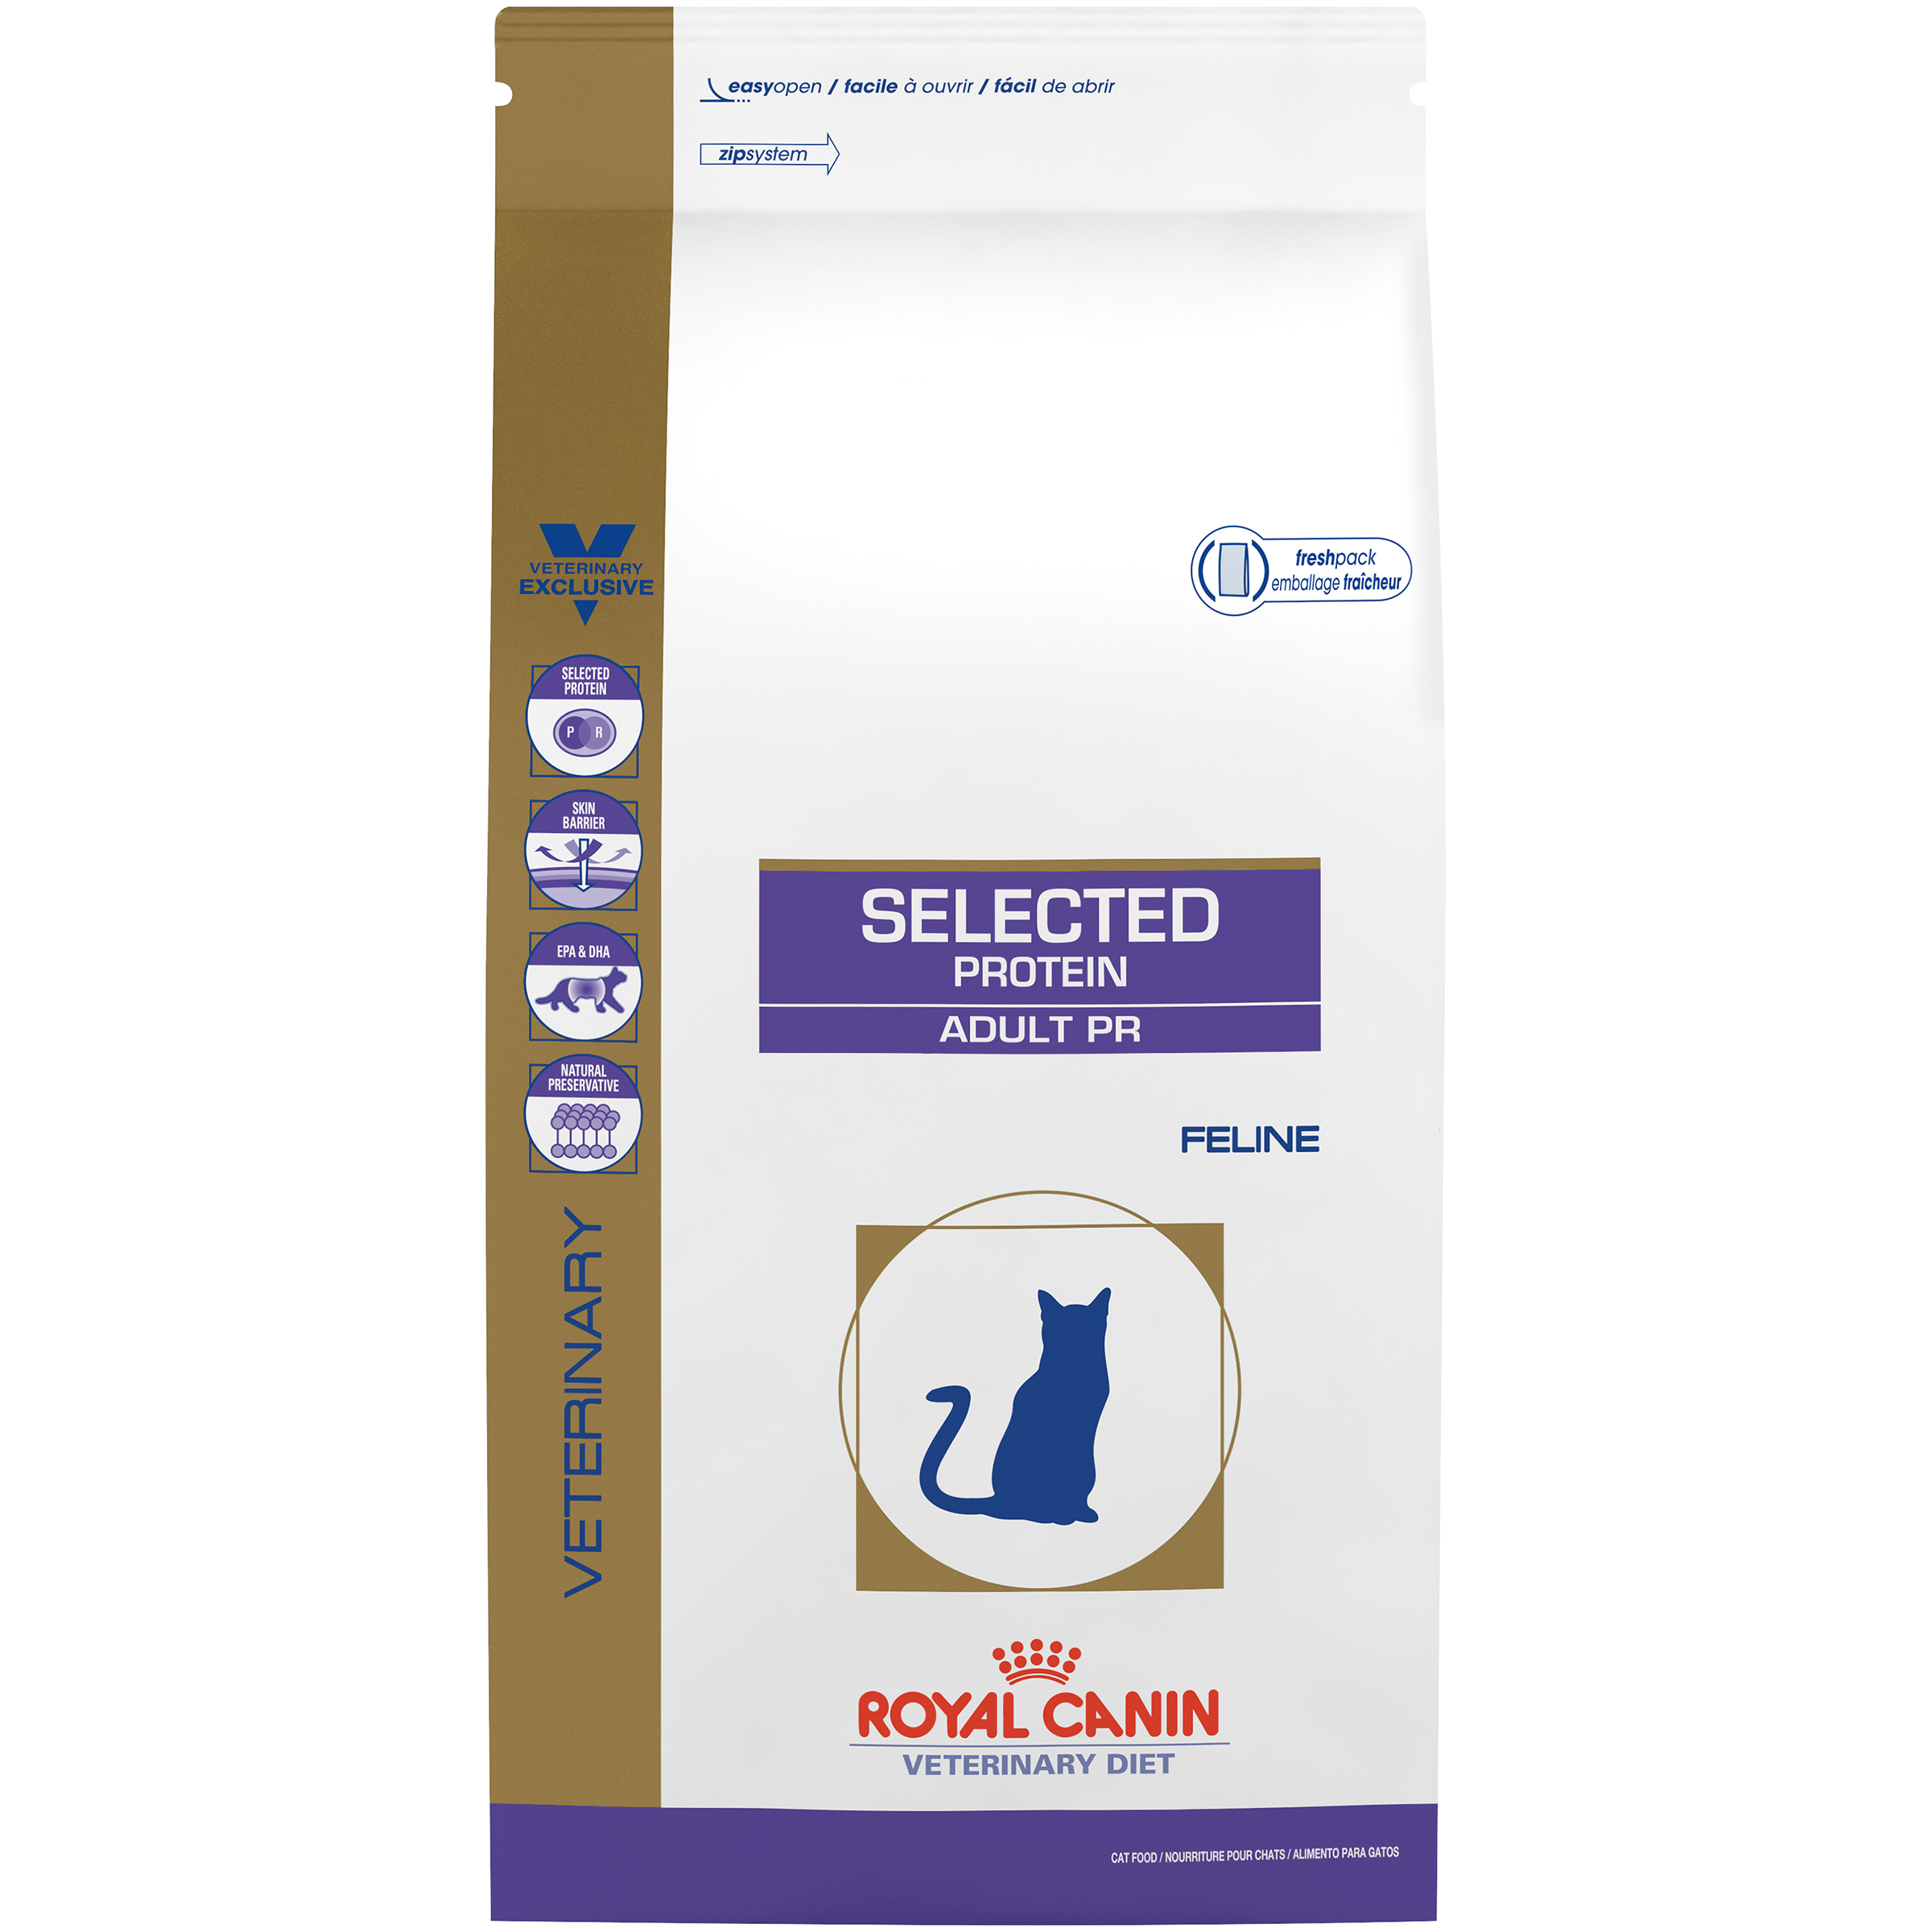 Royal Canin Veterinary Diet Feline Selected Protein Adult PR Dry Cat Food